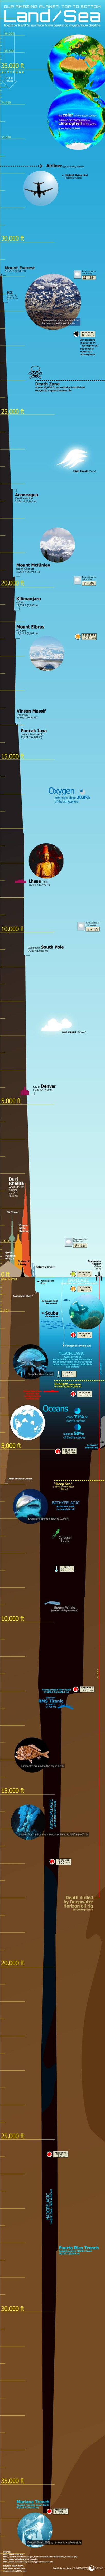 tallest-mountain-to-deepest-ocean-trench-infographic